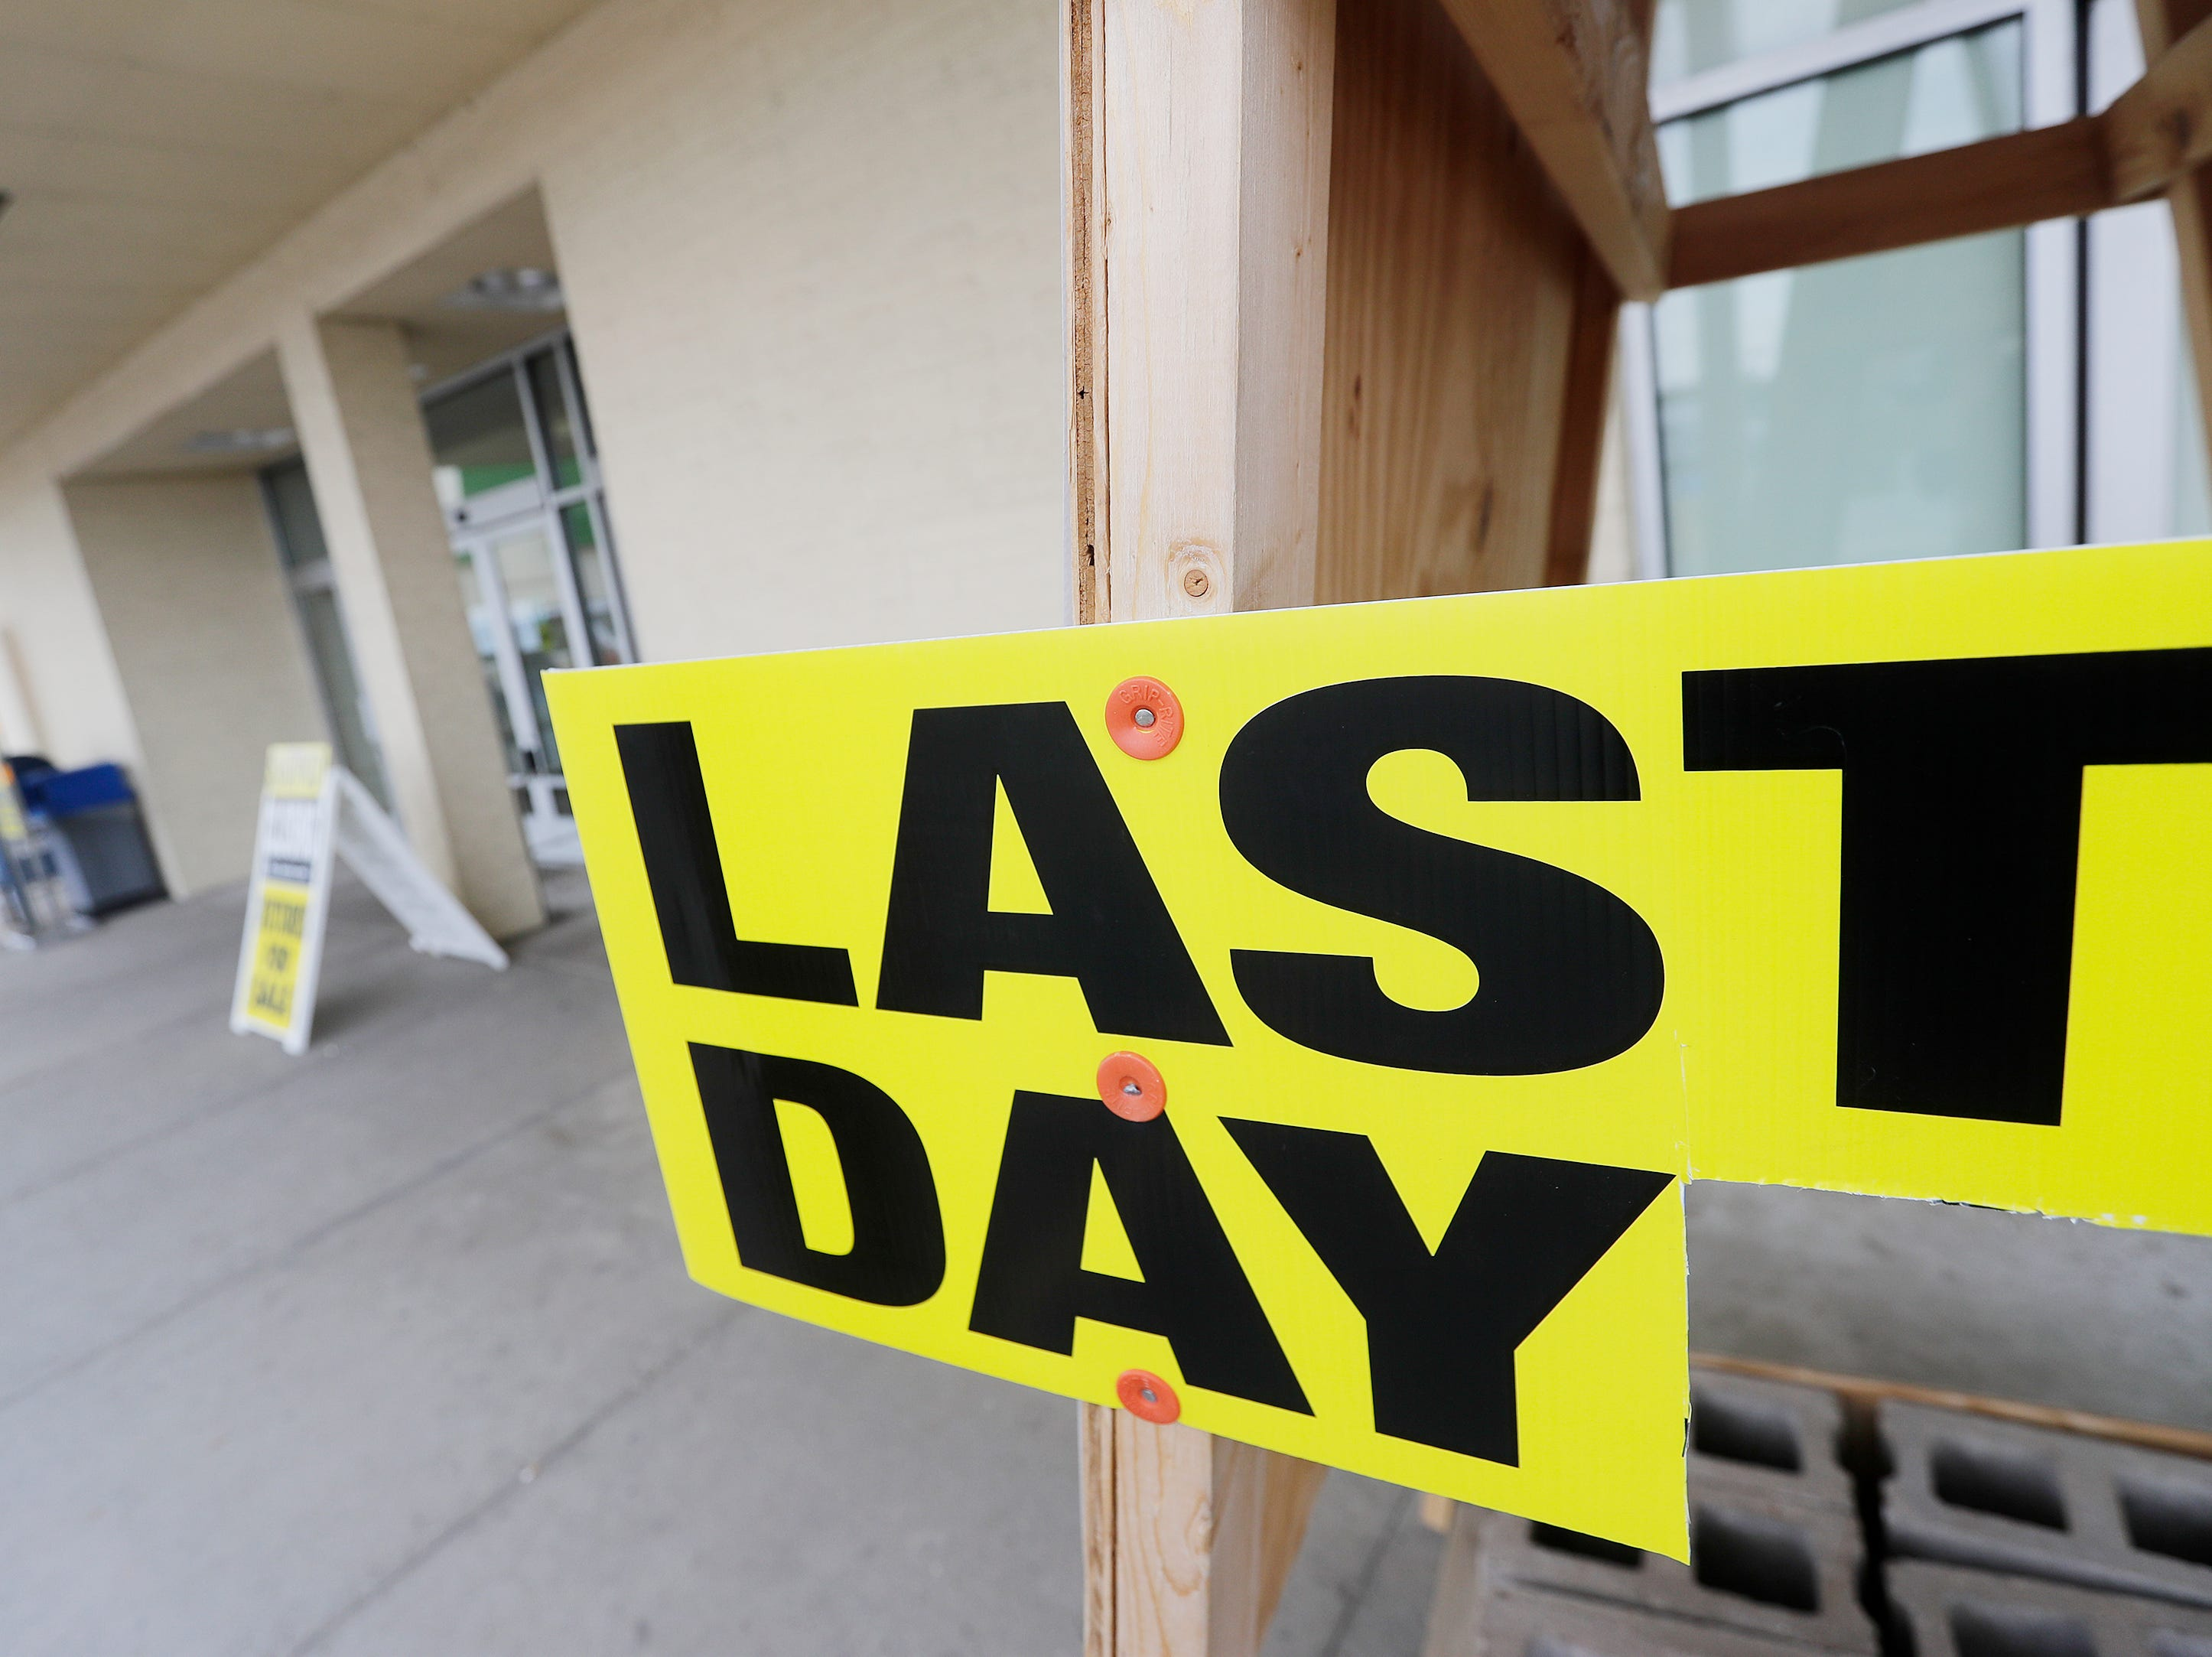 The final day of business at the Shopko on Military Ave on Monday, April 22, 2019 in Green Bay, Wis.